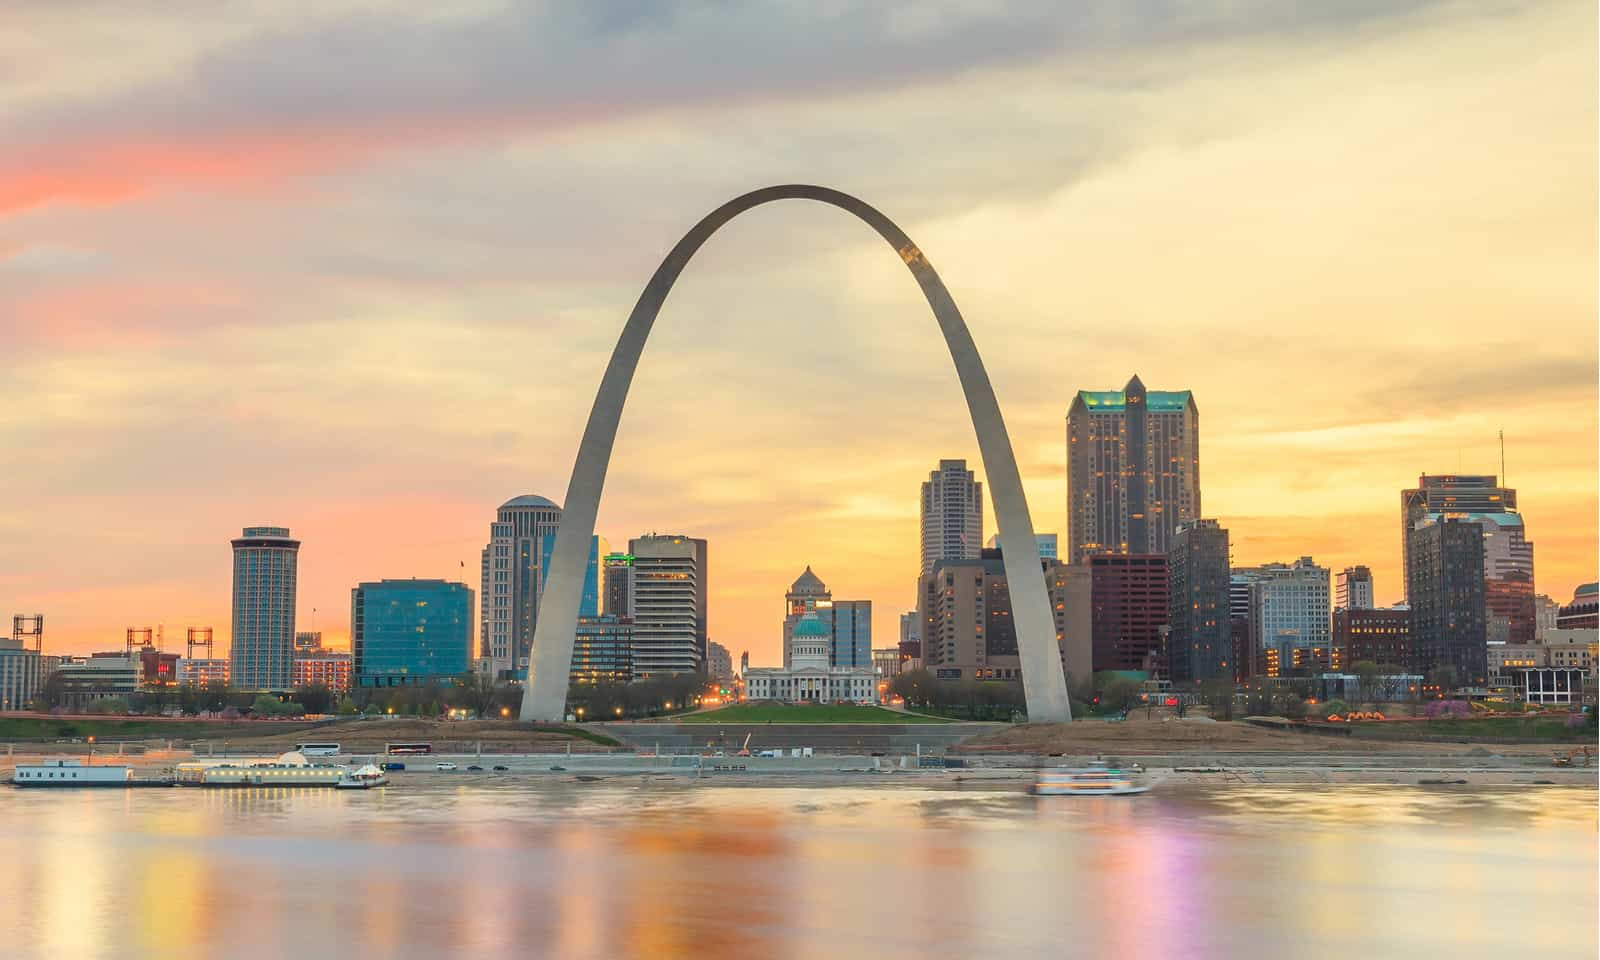 St. Louis Gets Its First-Ever Vegan Food Festival This August